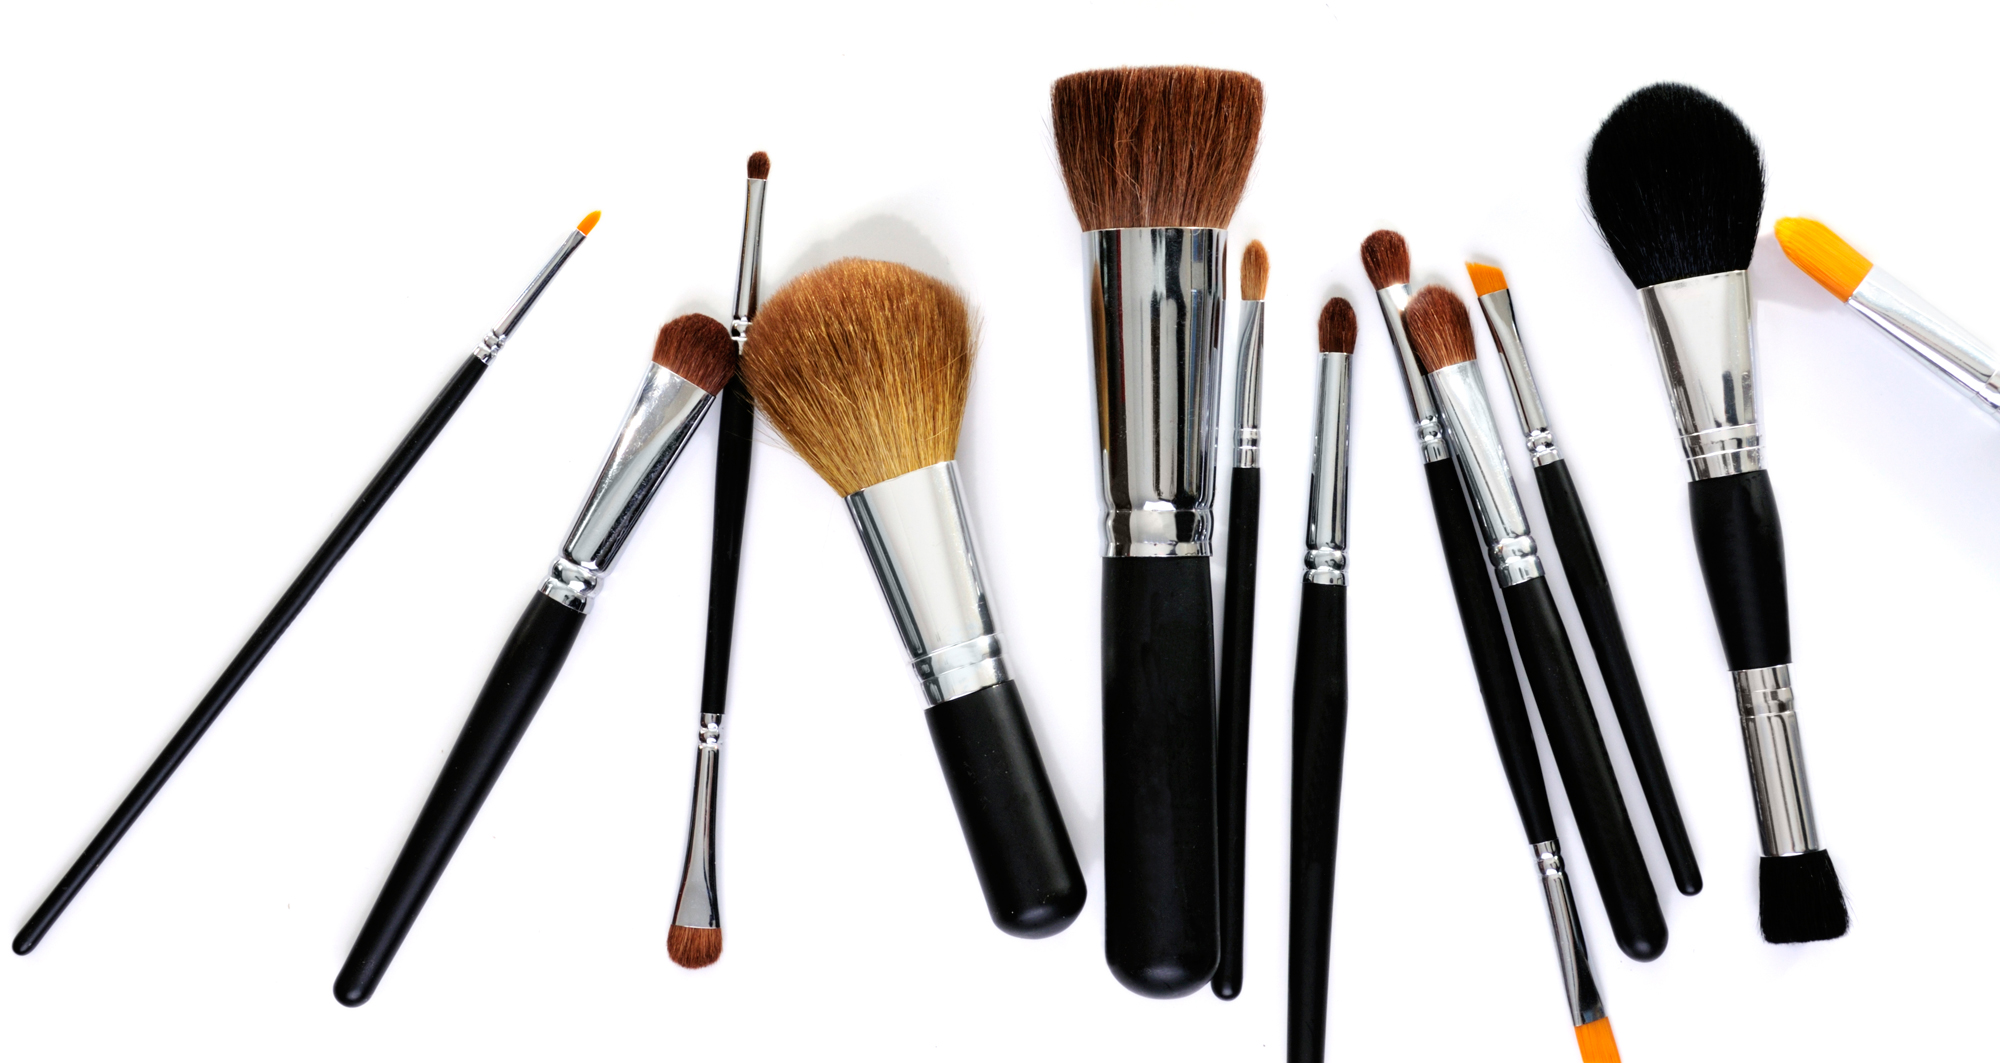 Clean up makeup brushes Lead